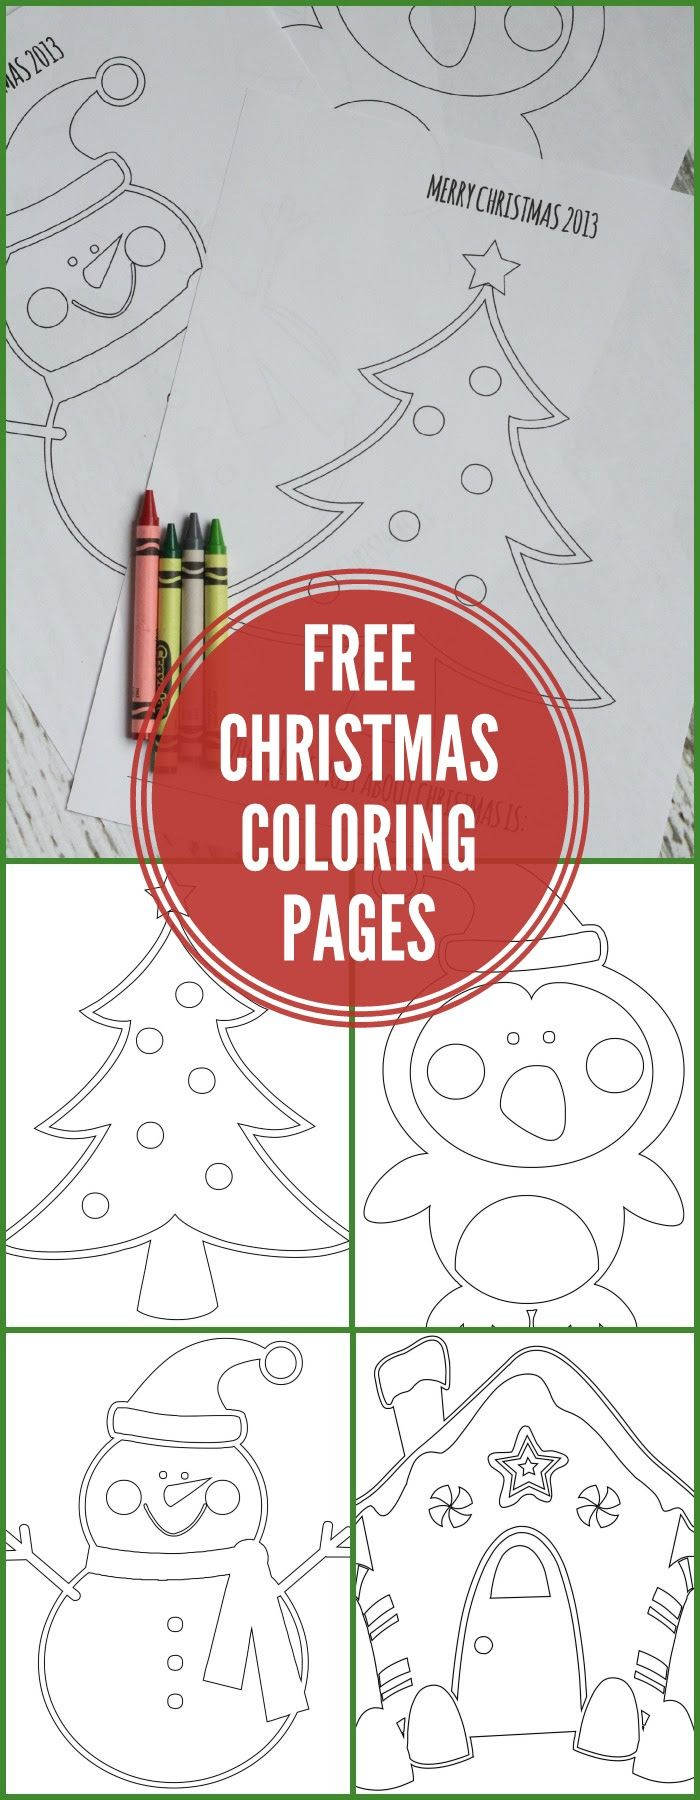 Free Christmas Coloring Pages (Lil\' Luna) | Free, Craft and Xmas